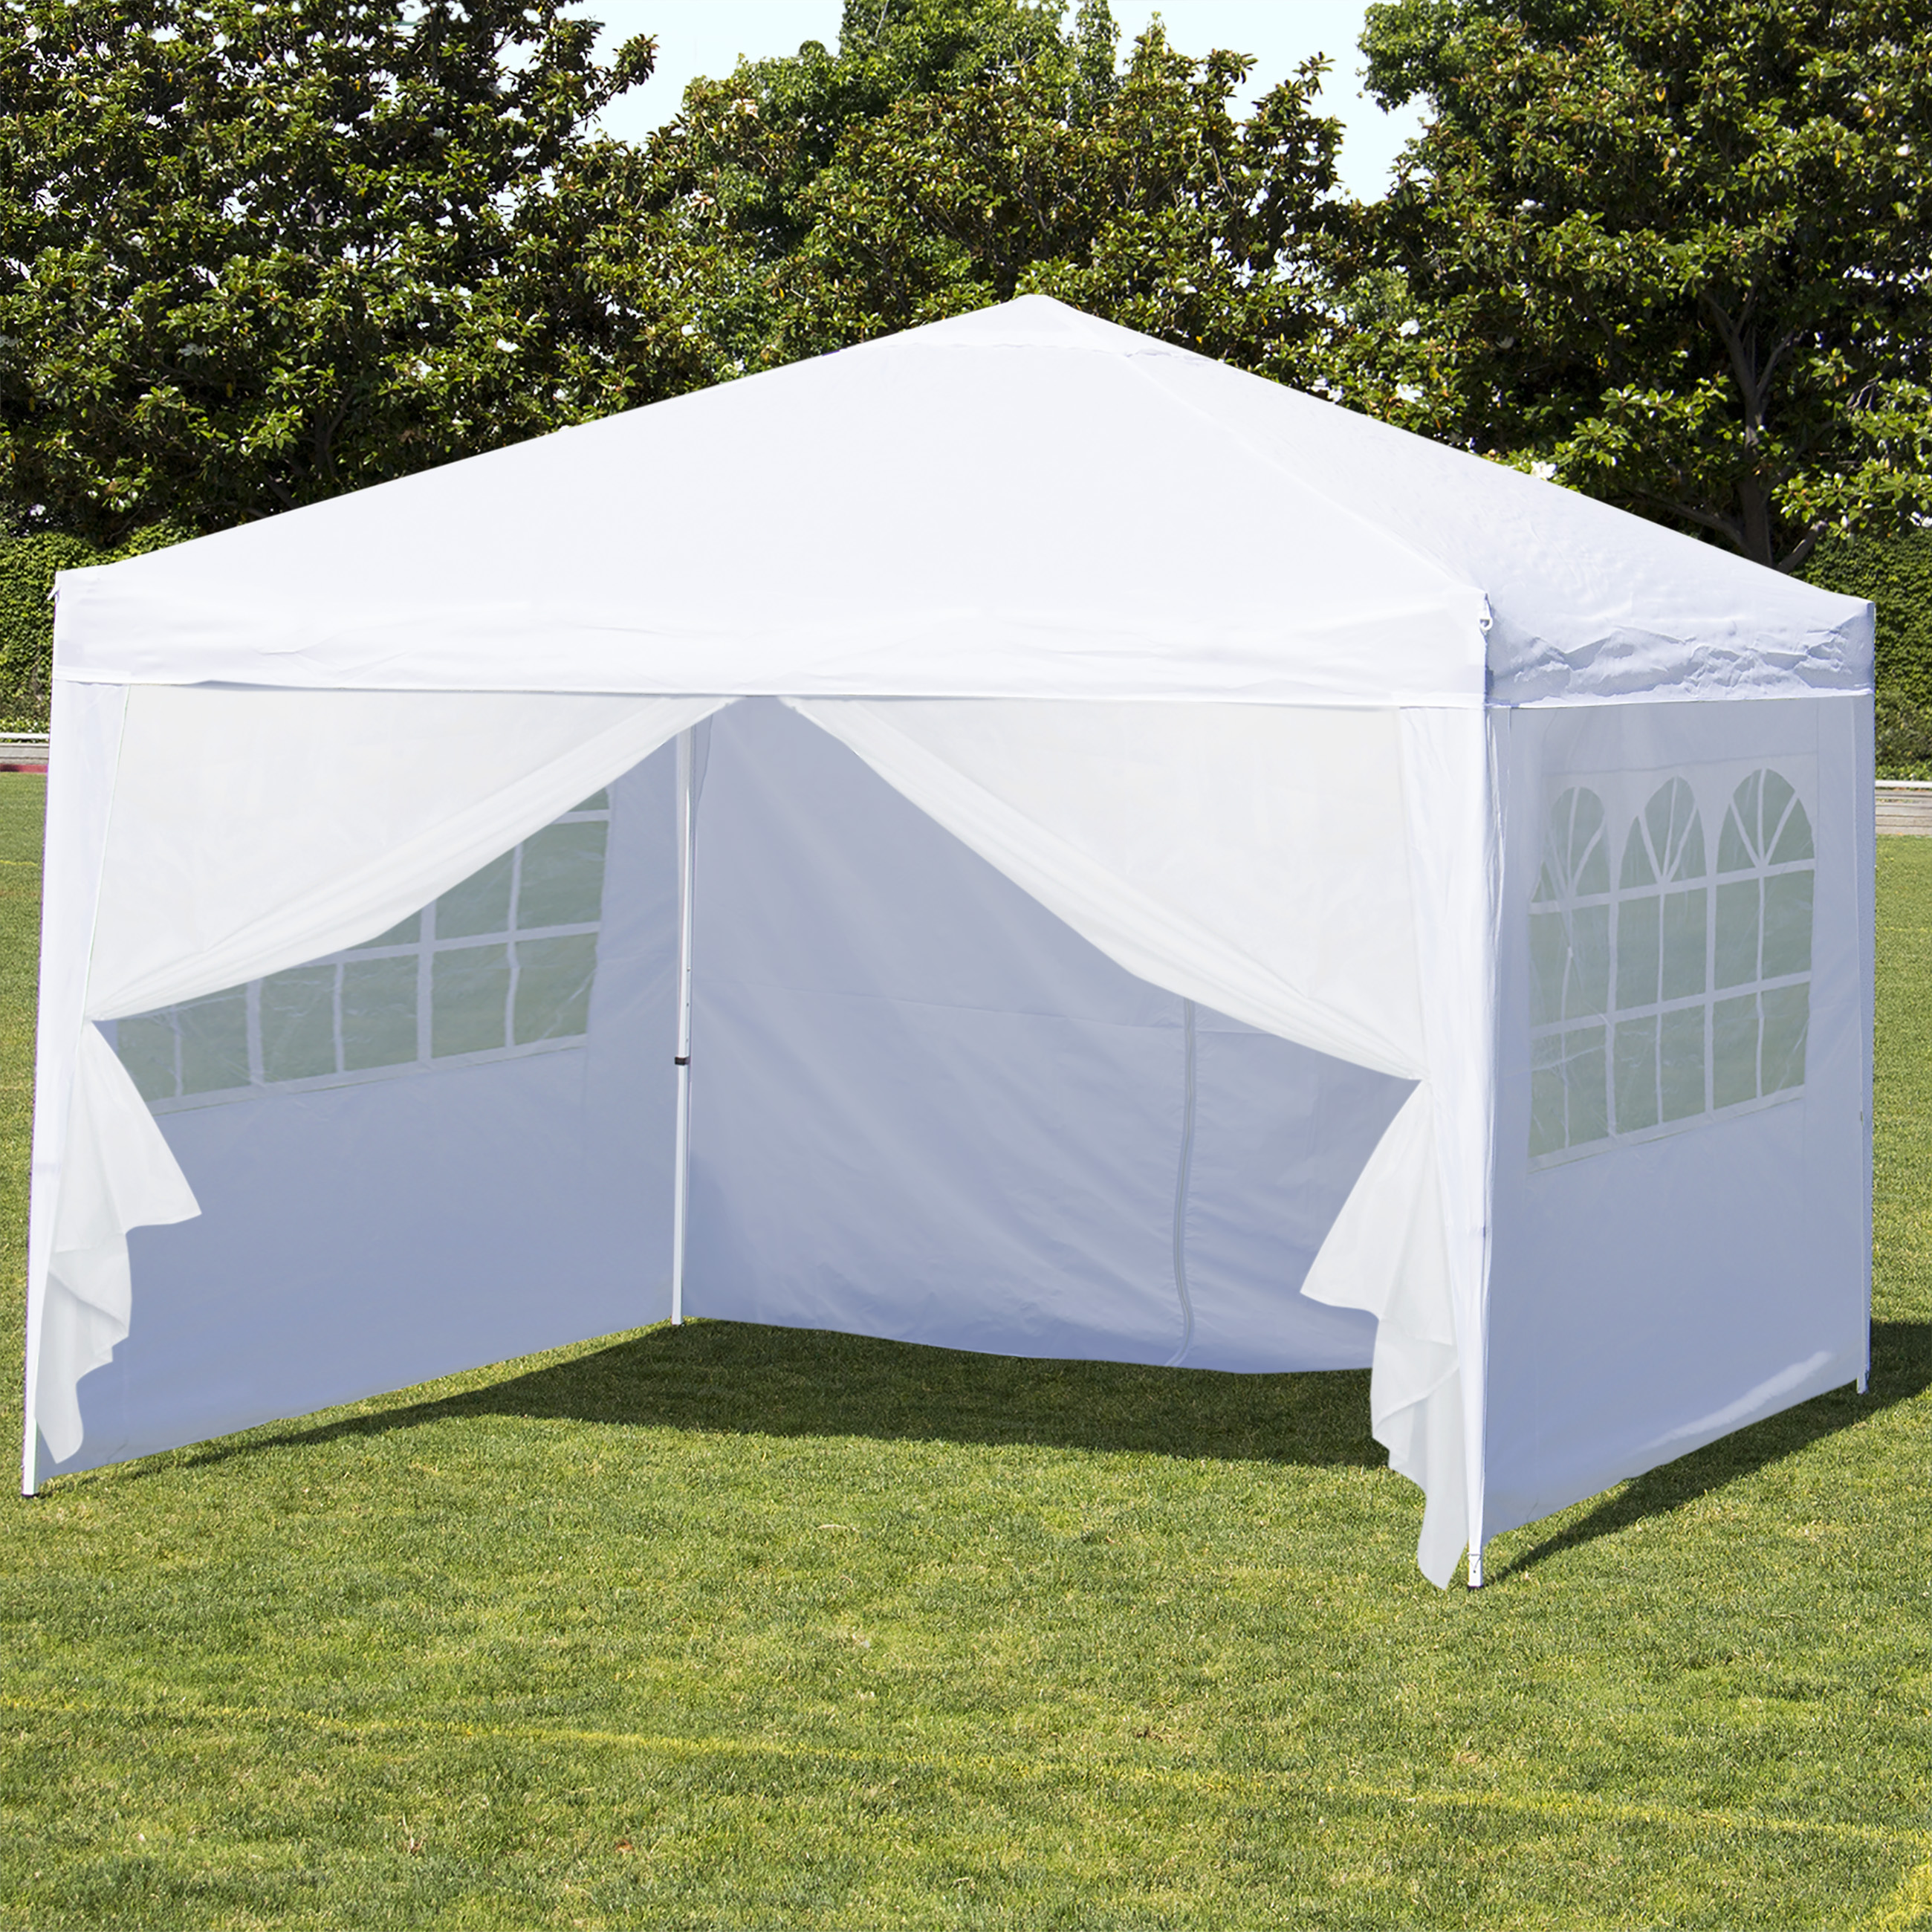 Awesome best choice products 10u0027 x 10u0027 ez pop up canopy tent side walls ahdextb